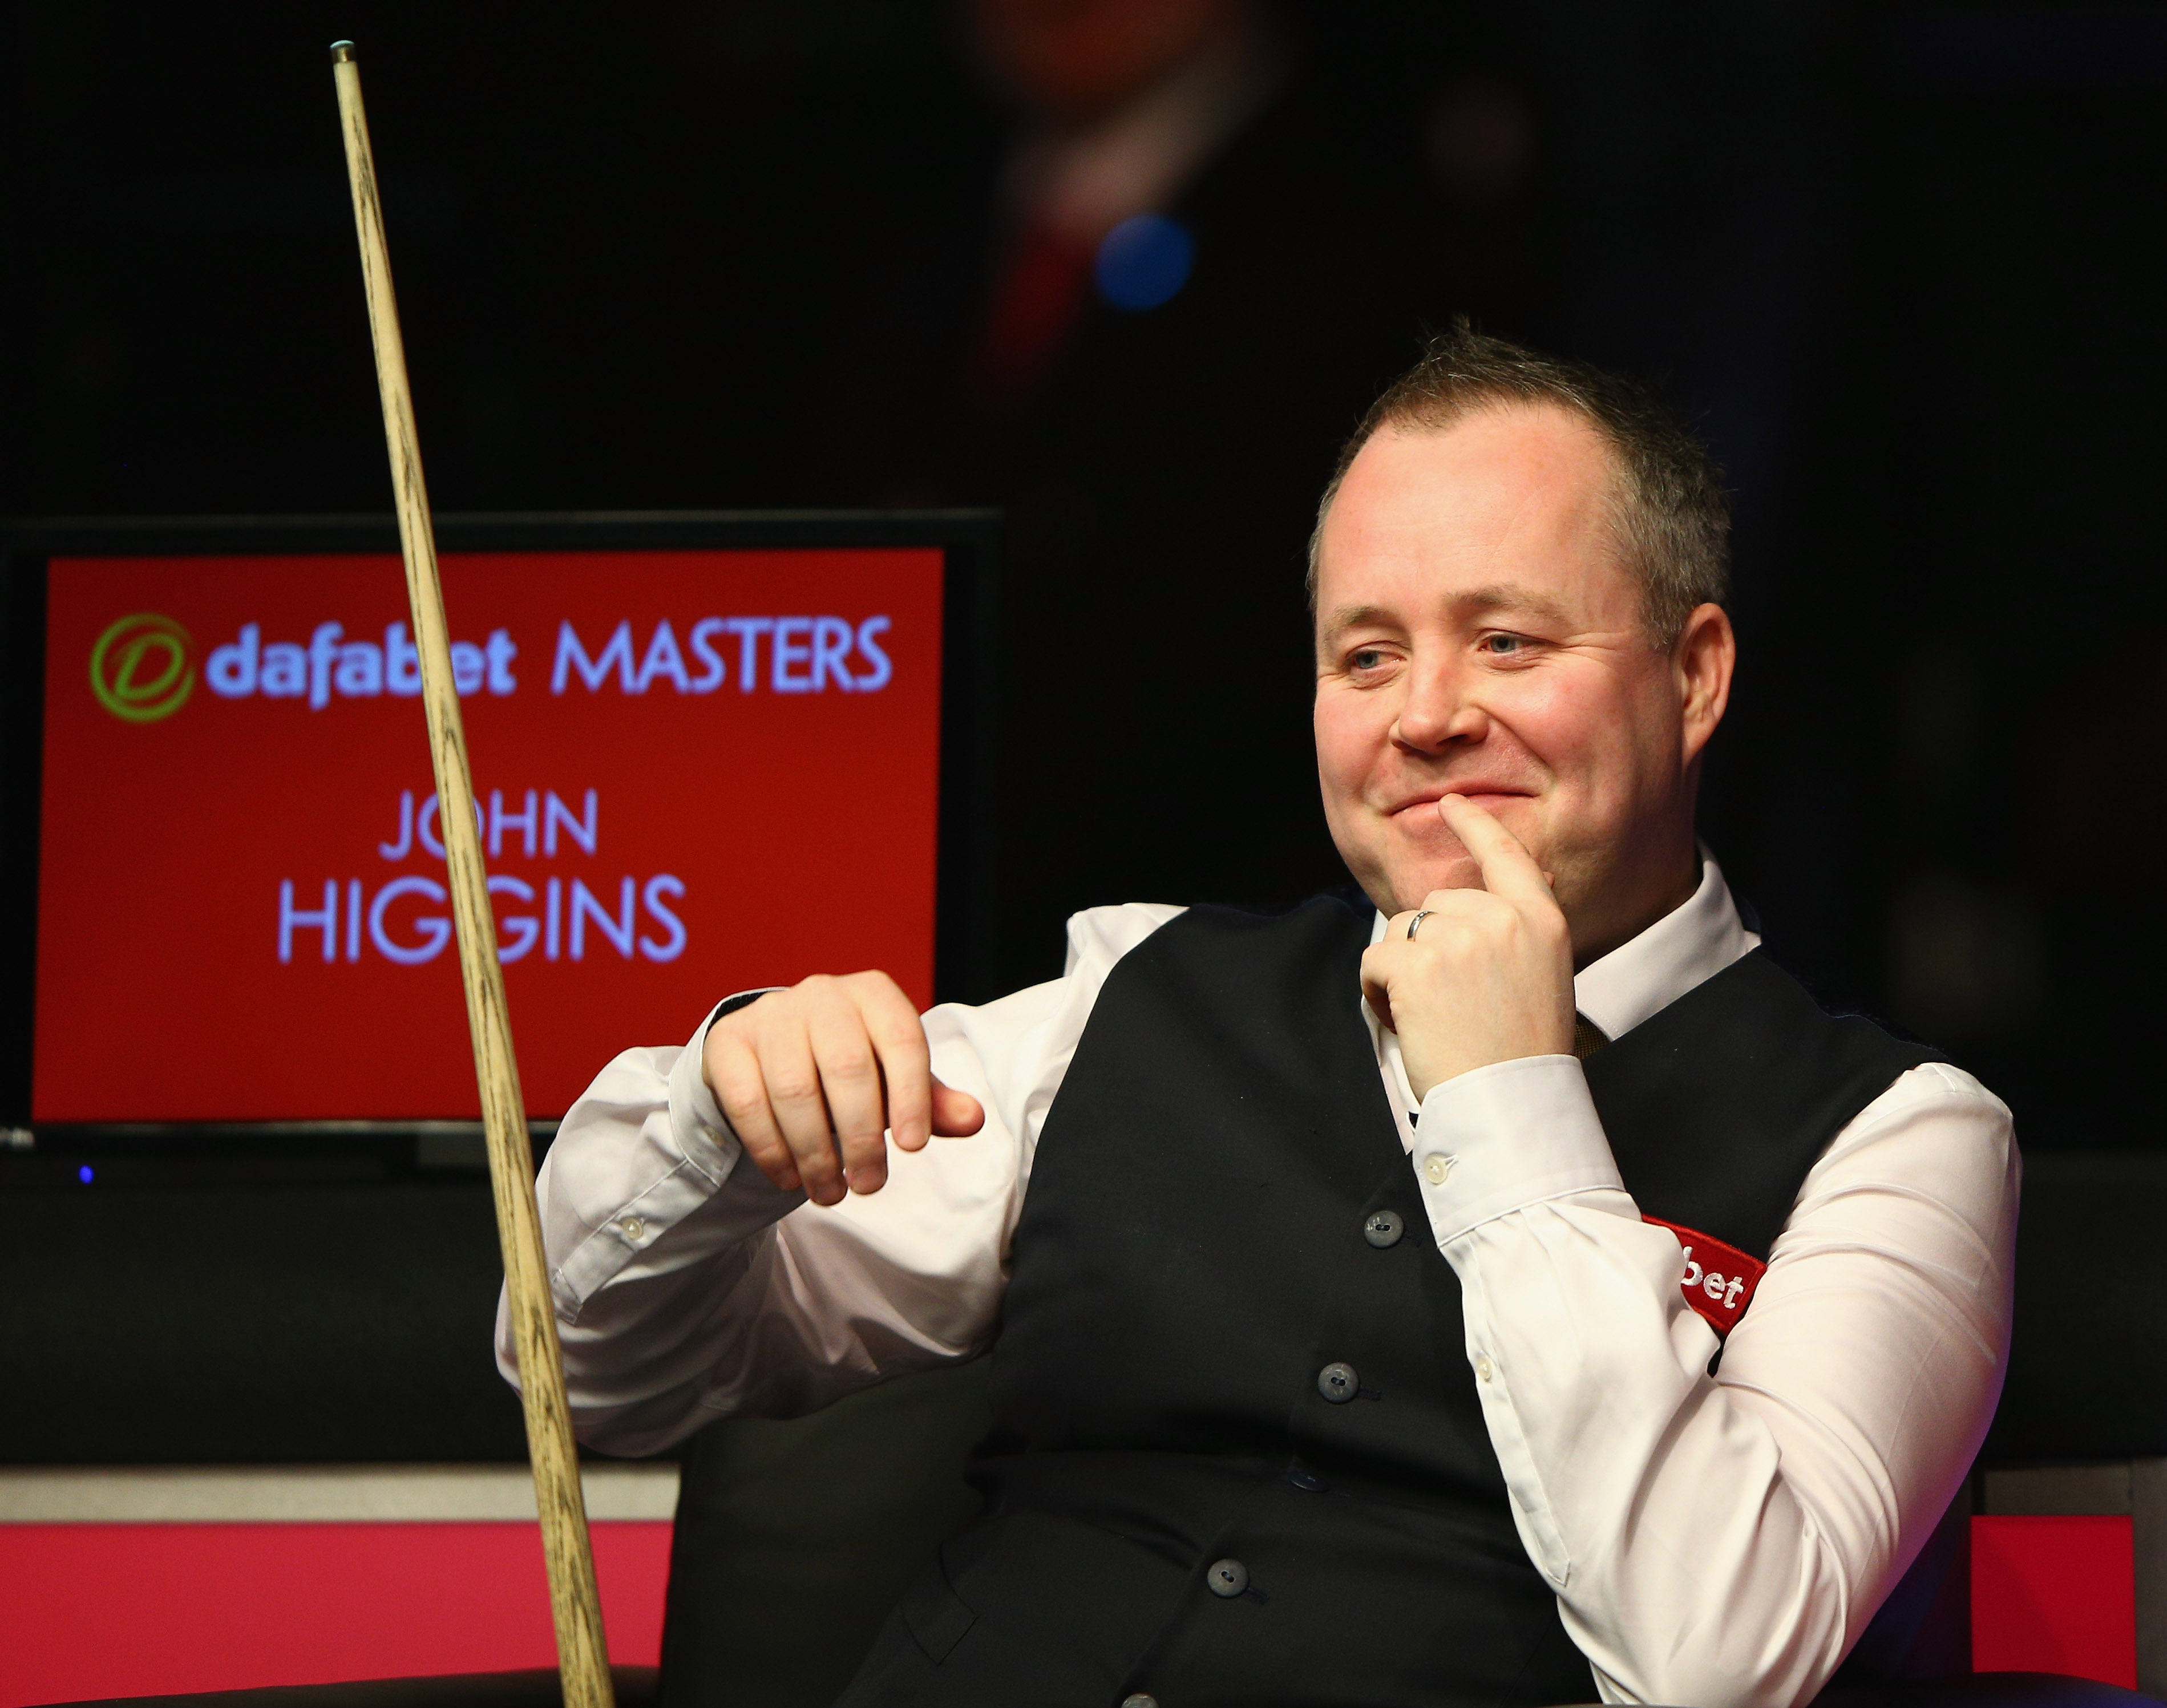 The four-times world champion lost 6-4 in a match of some quality against Mark Allen at the Masters.